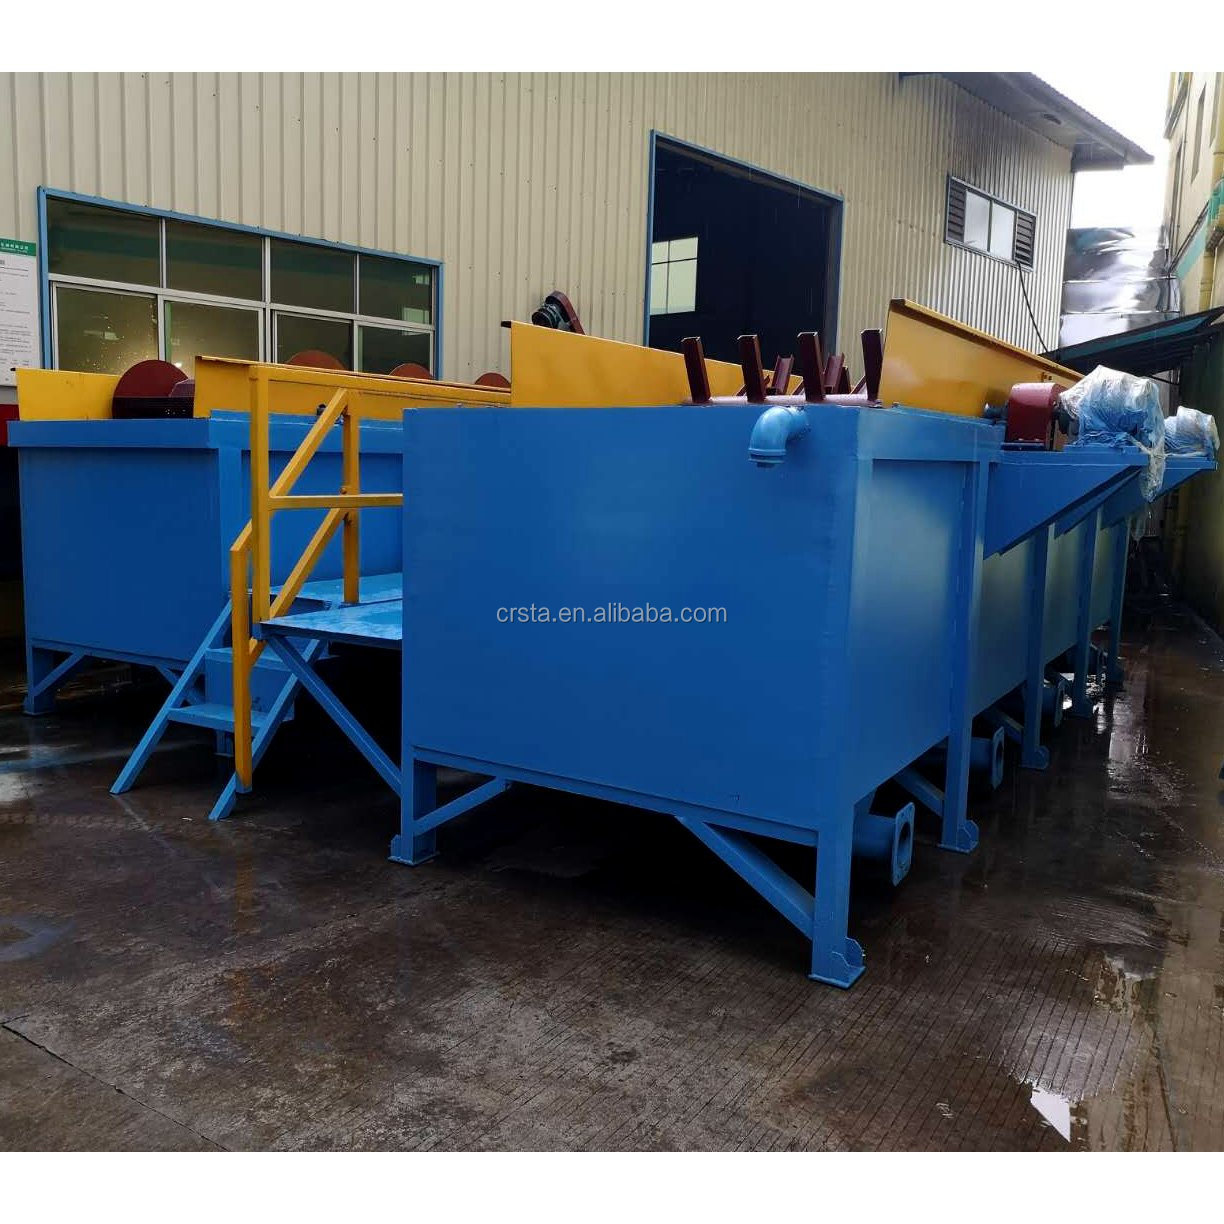 Stainless Steel Plastic PE Film Floating Washing Tank/ SUS Material PP Woven Bags Floating Washers